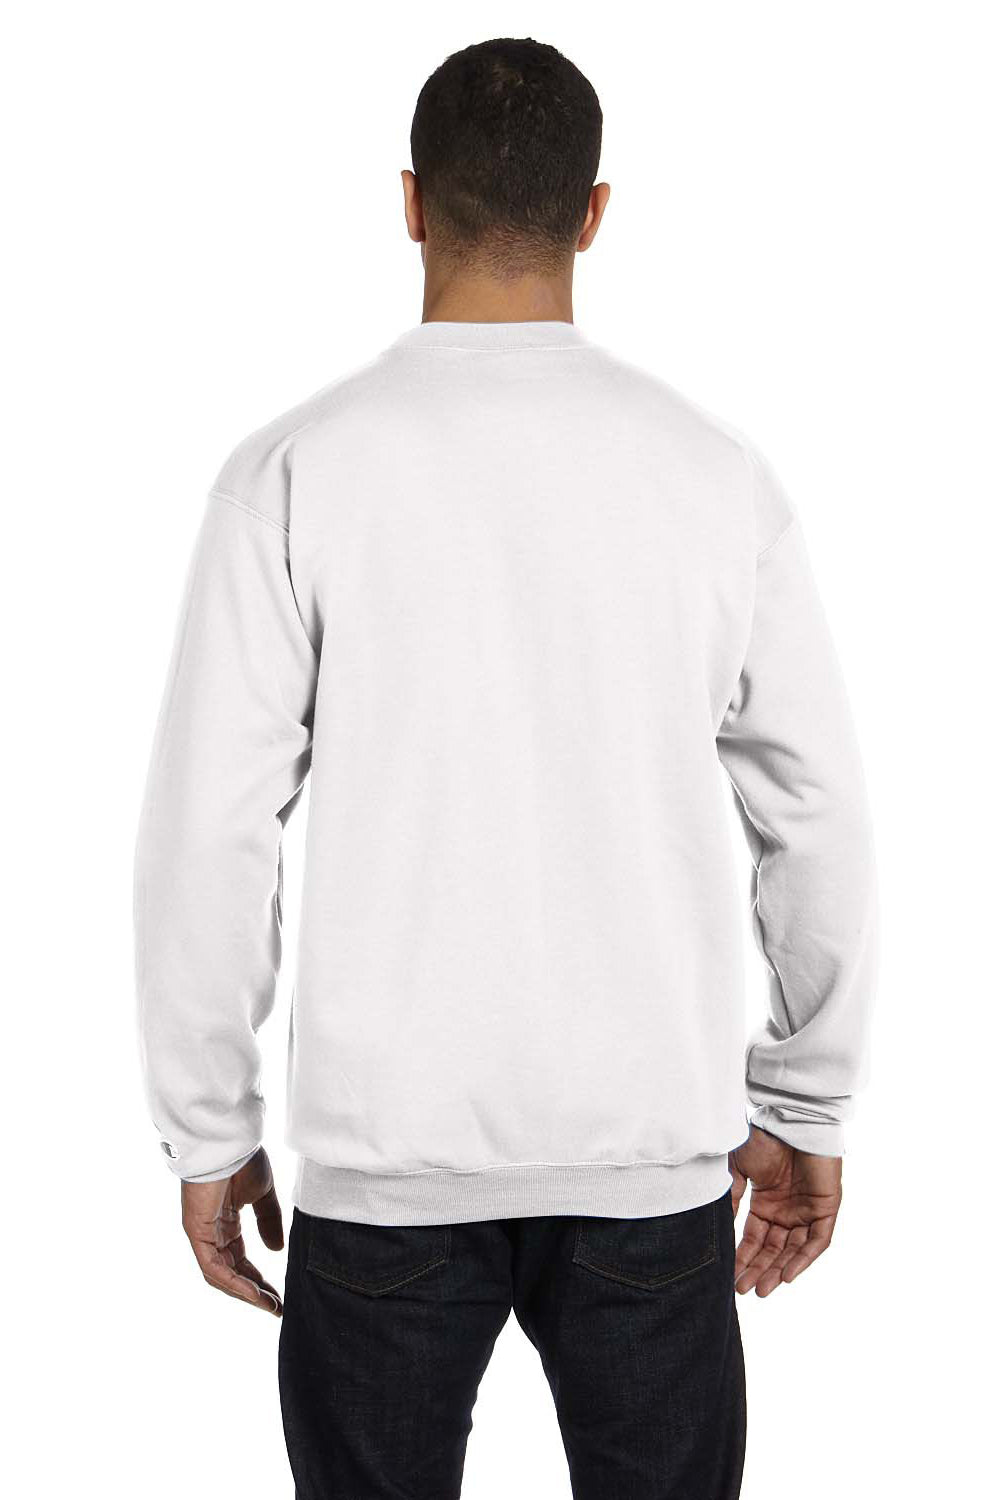 Champion S600 Mens Double Dry Eco Moisture Wicking Fleece Crewneck Sweatshirt White Back